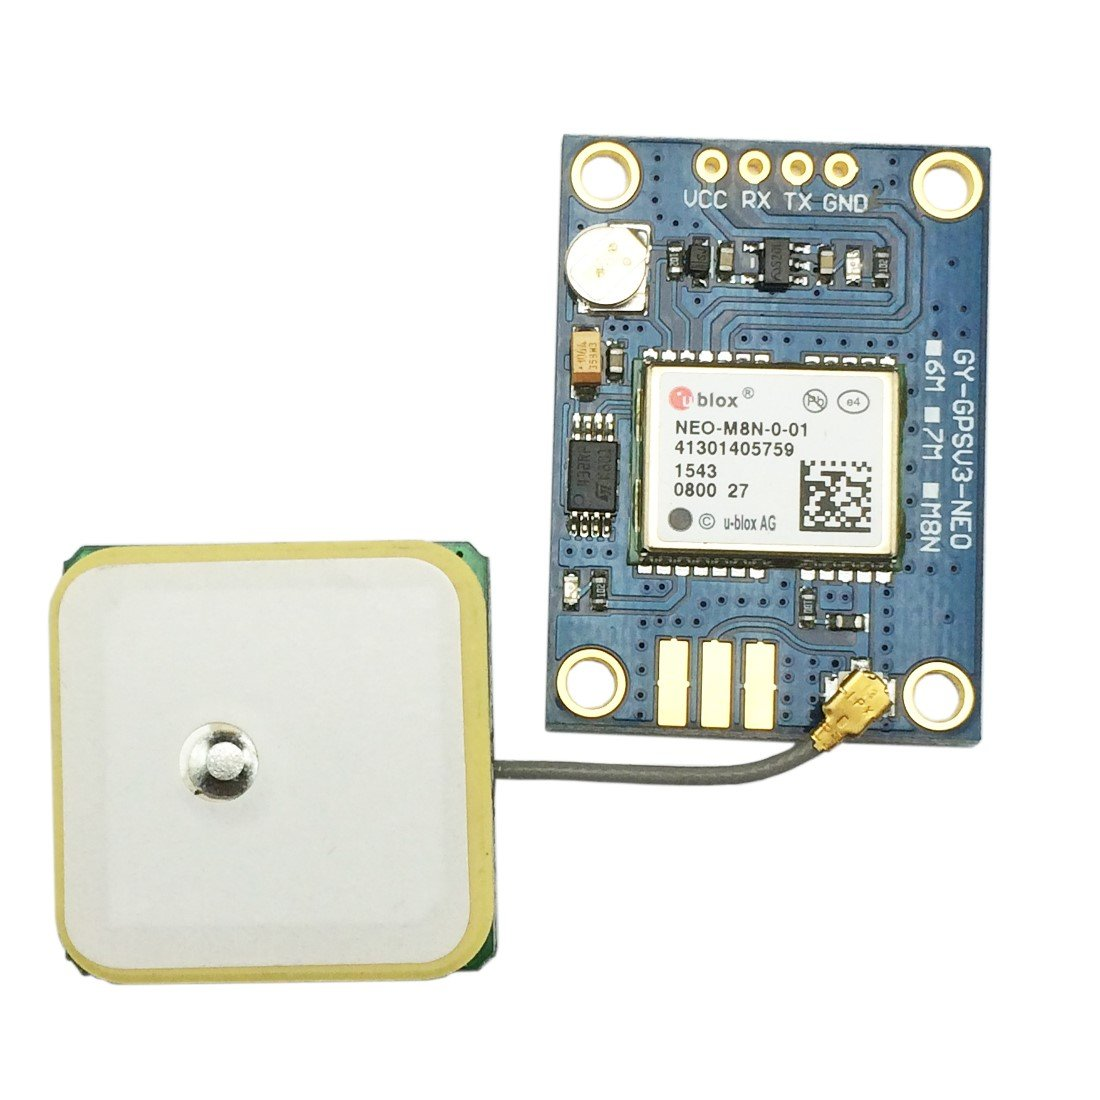 Whataval NEOM8N Ublox GPSV3 NEO-M8N-001 APM2.6 for Aircraft Flight RC Controller